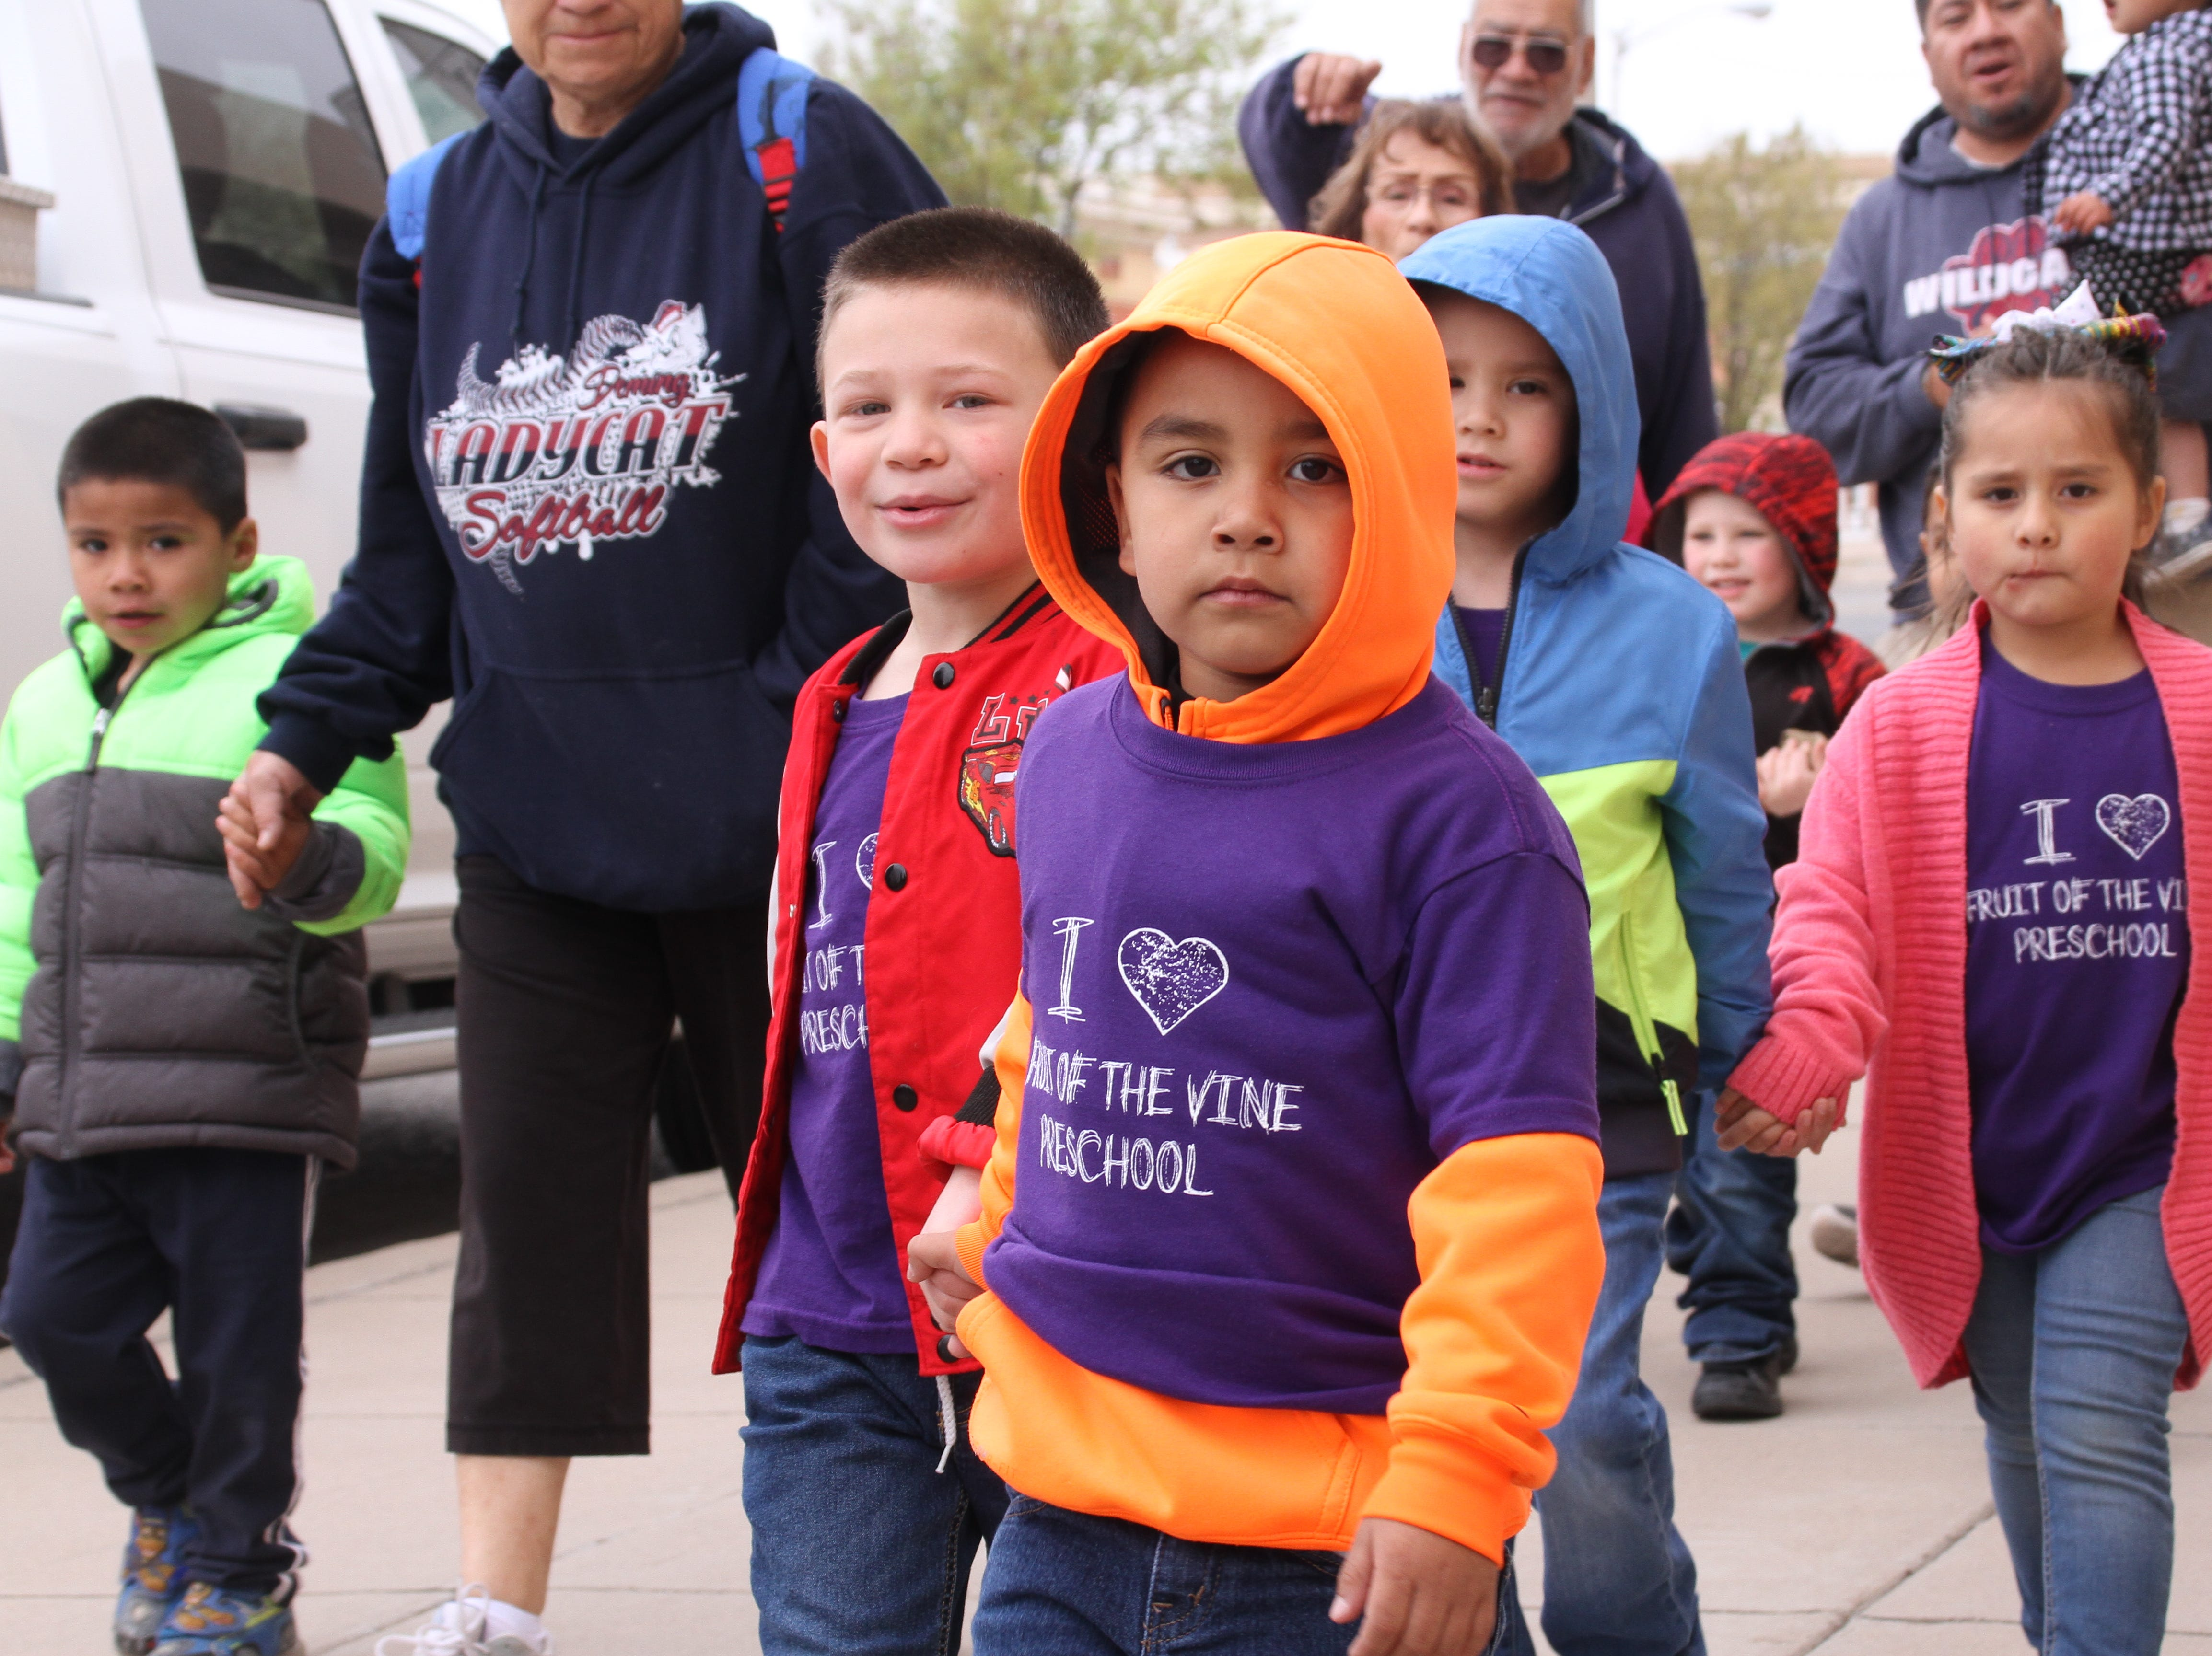 Five-year-old Santiago Villa of Fruit of the Vine preschool leads his classmates during the Childhood Abuse Awareness walk.